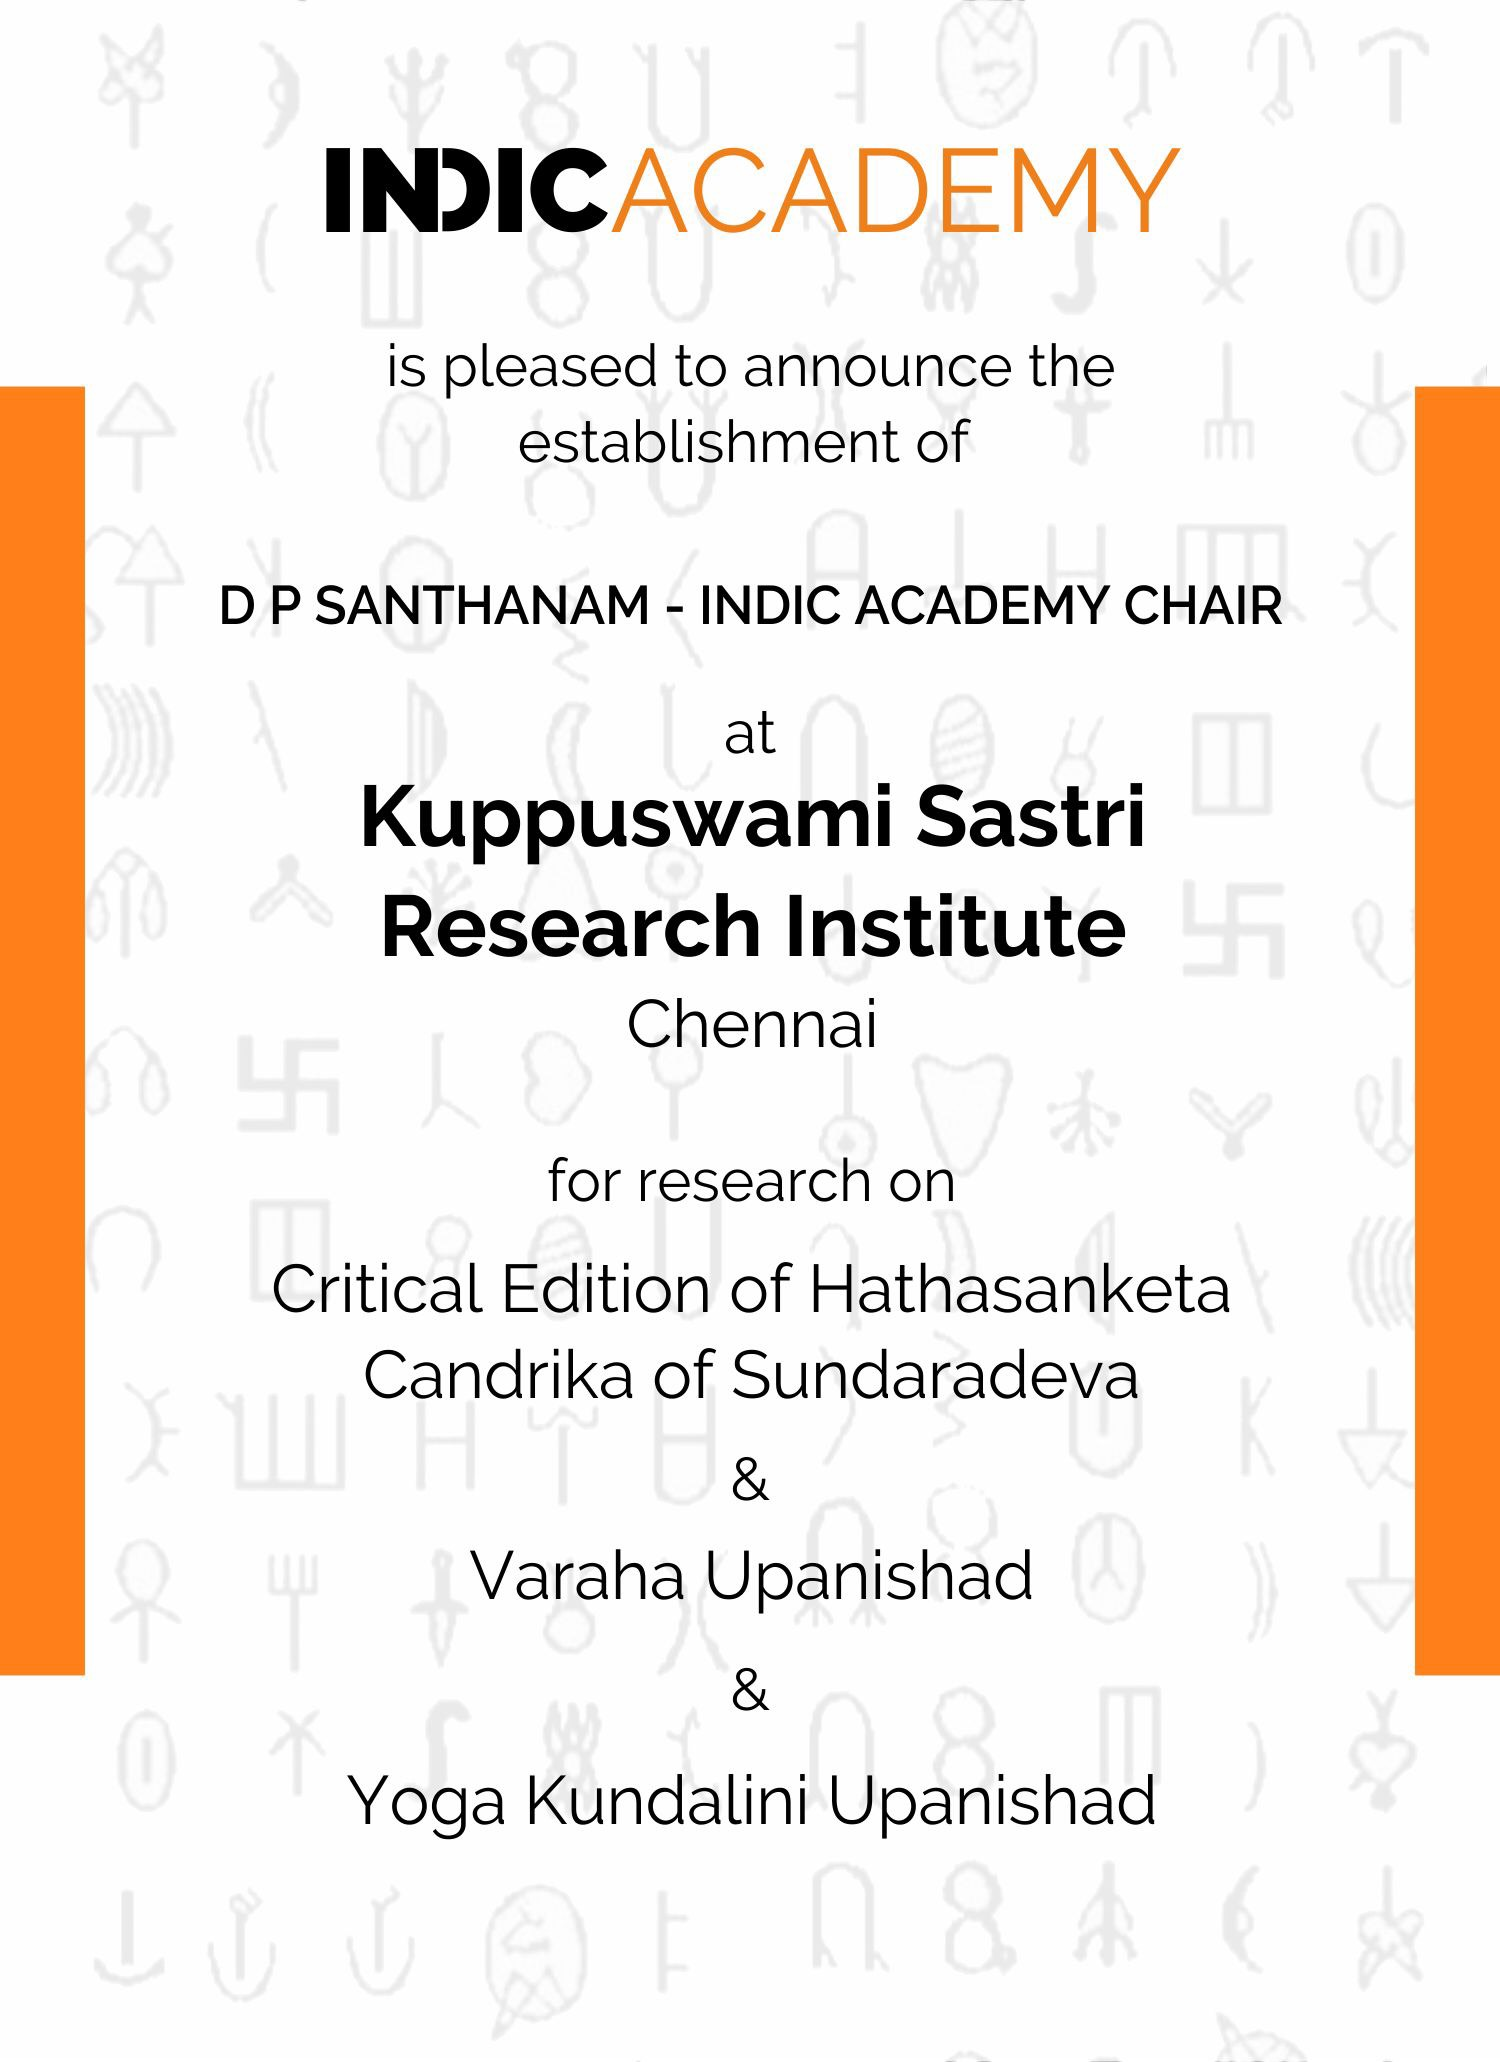 DP Santhanam- Indic Academy Chair at KSRI Chennai